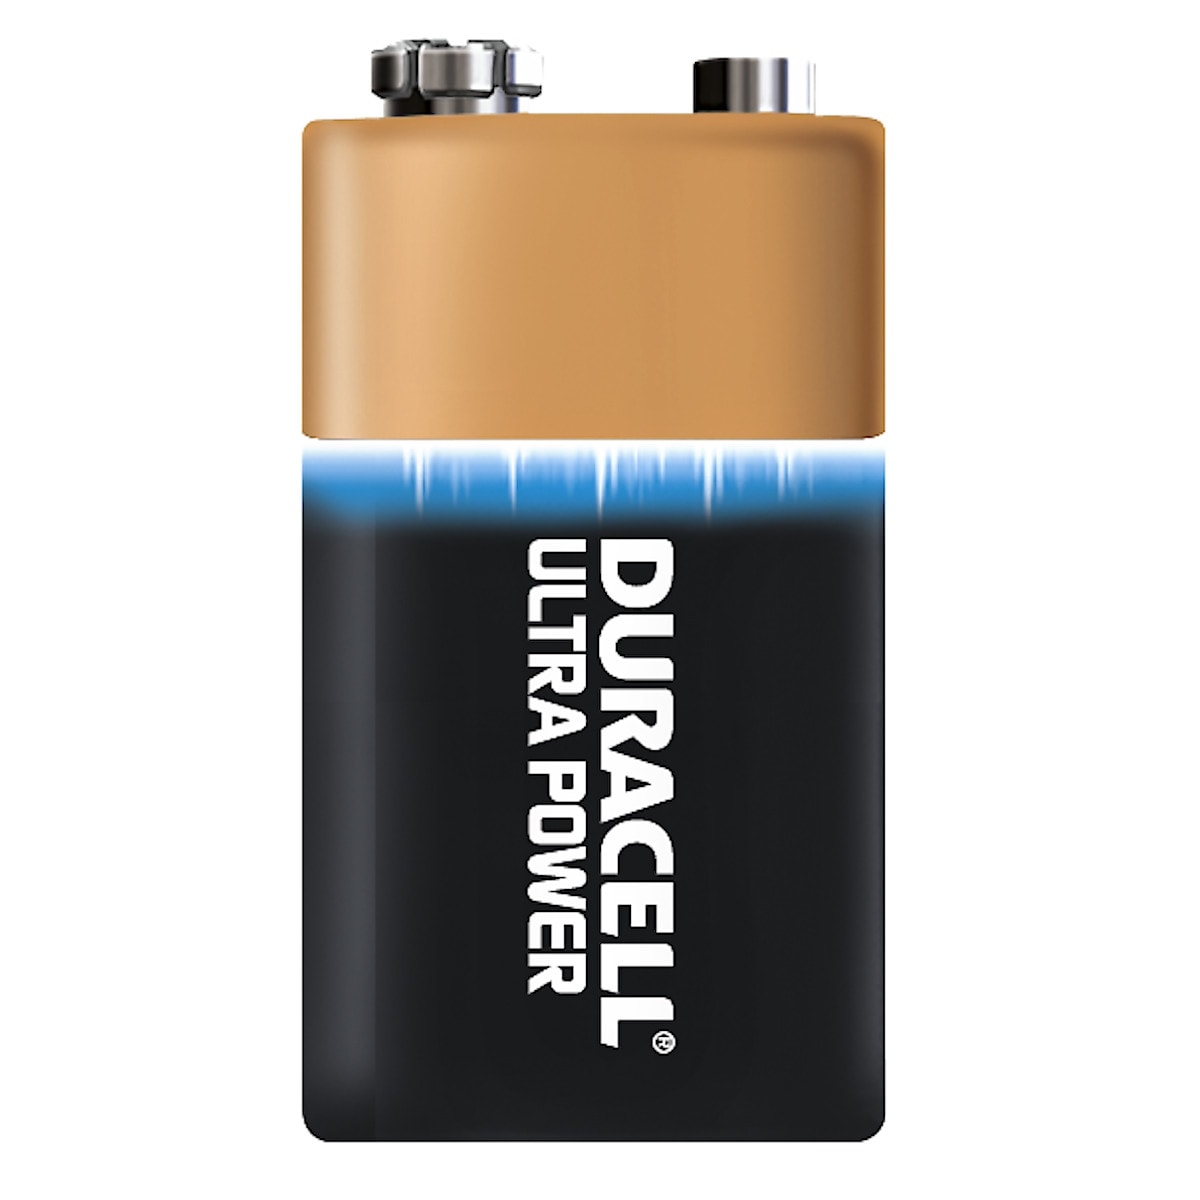 Alkaliparisto 9 V Duracell Ultra Power